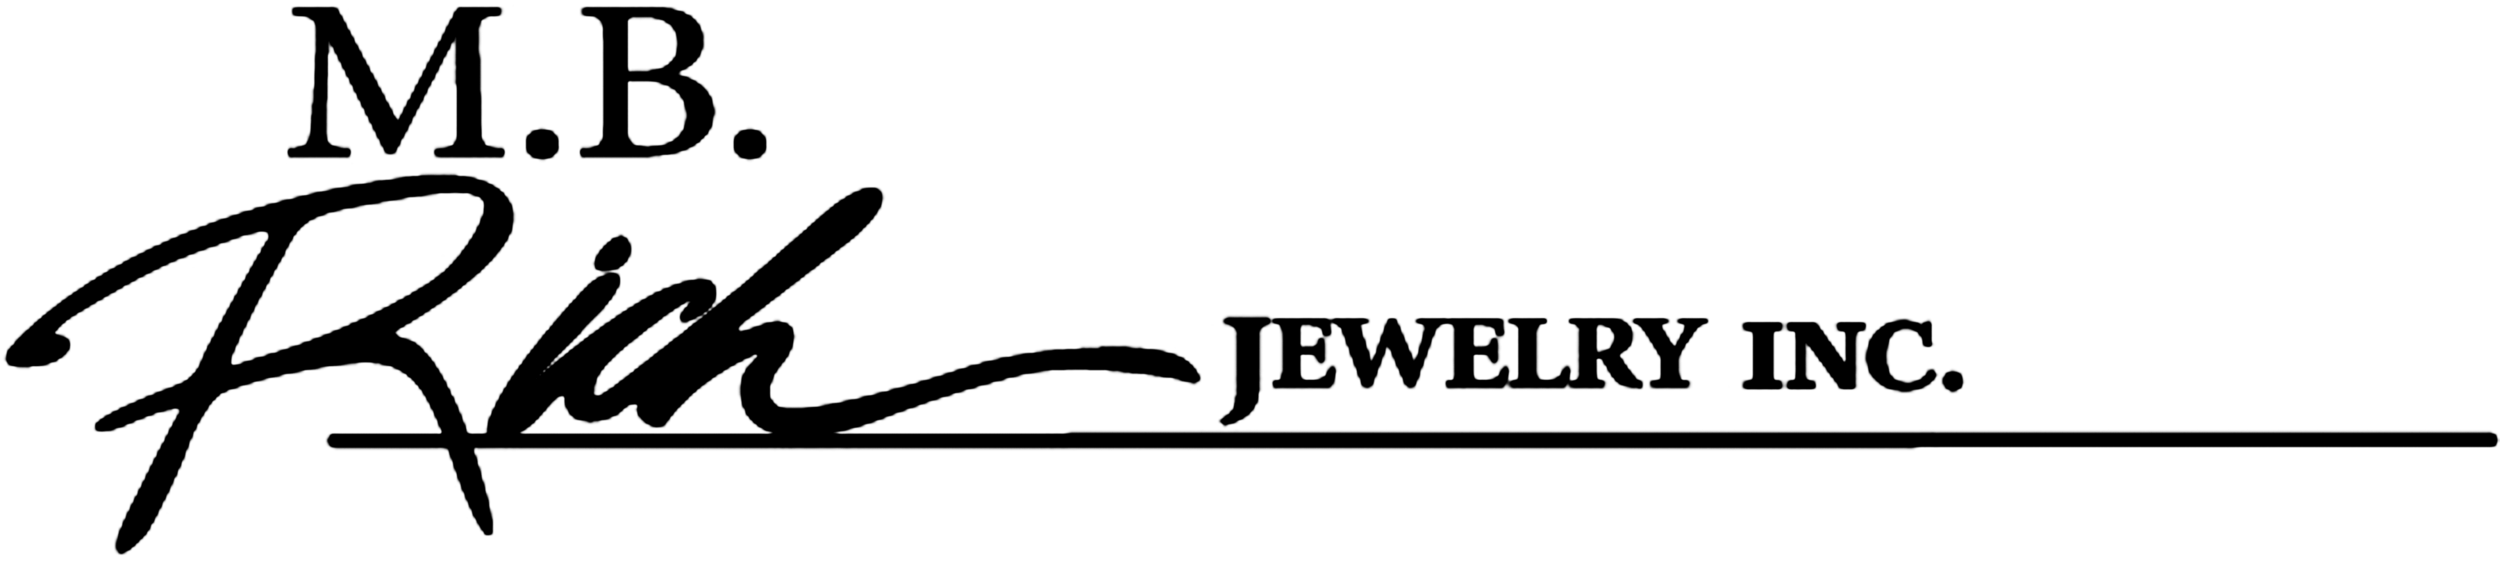 MBR LOGO PNG (1).png